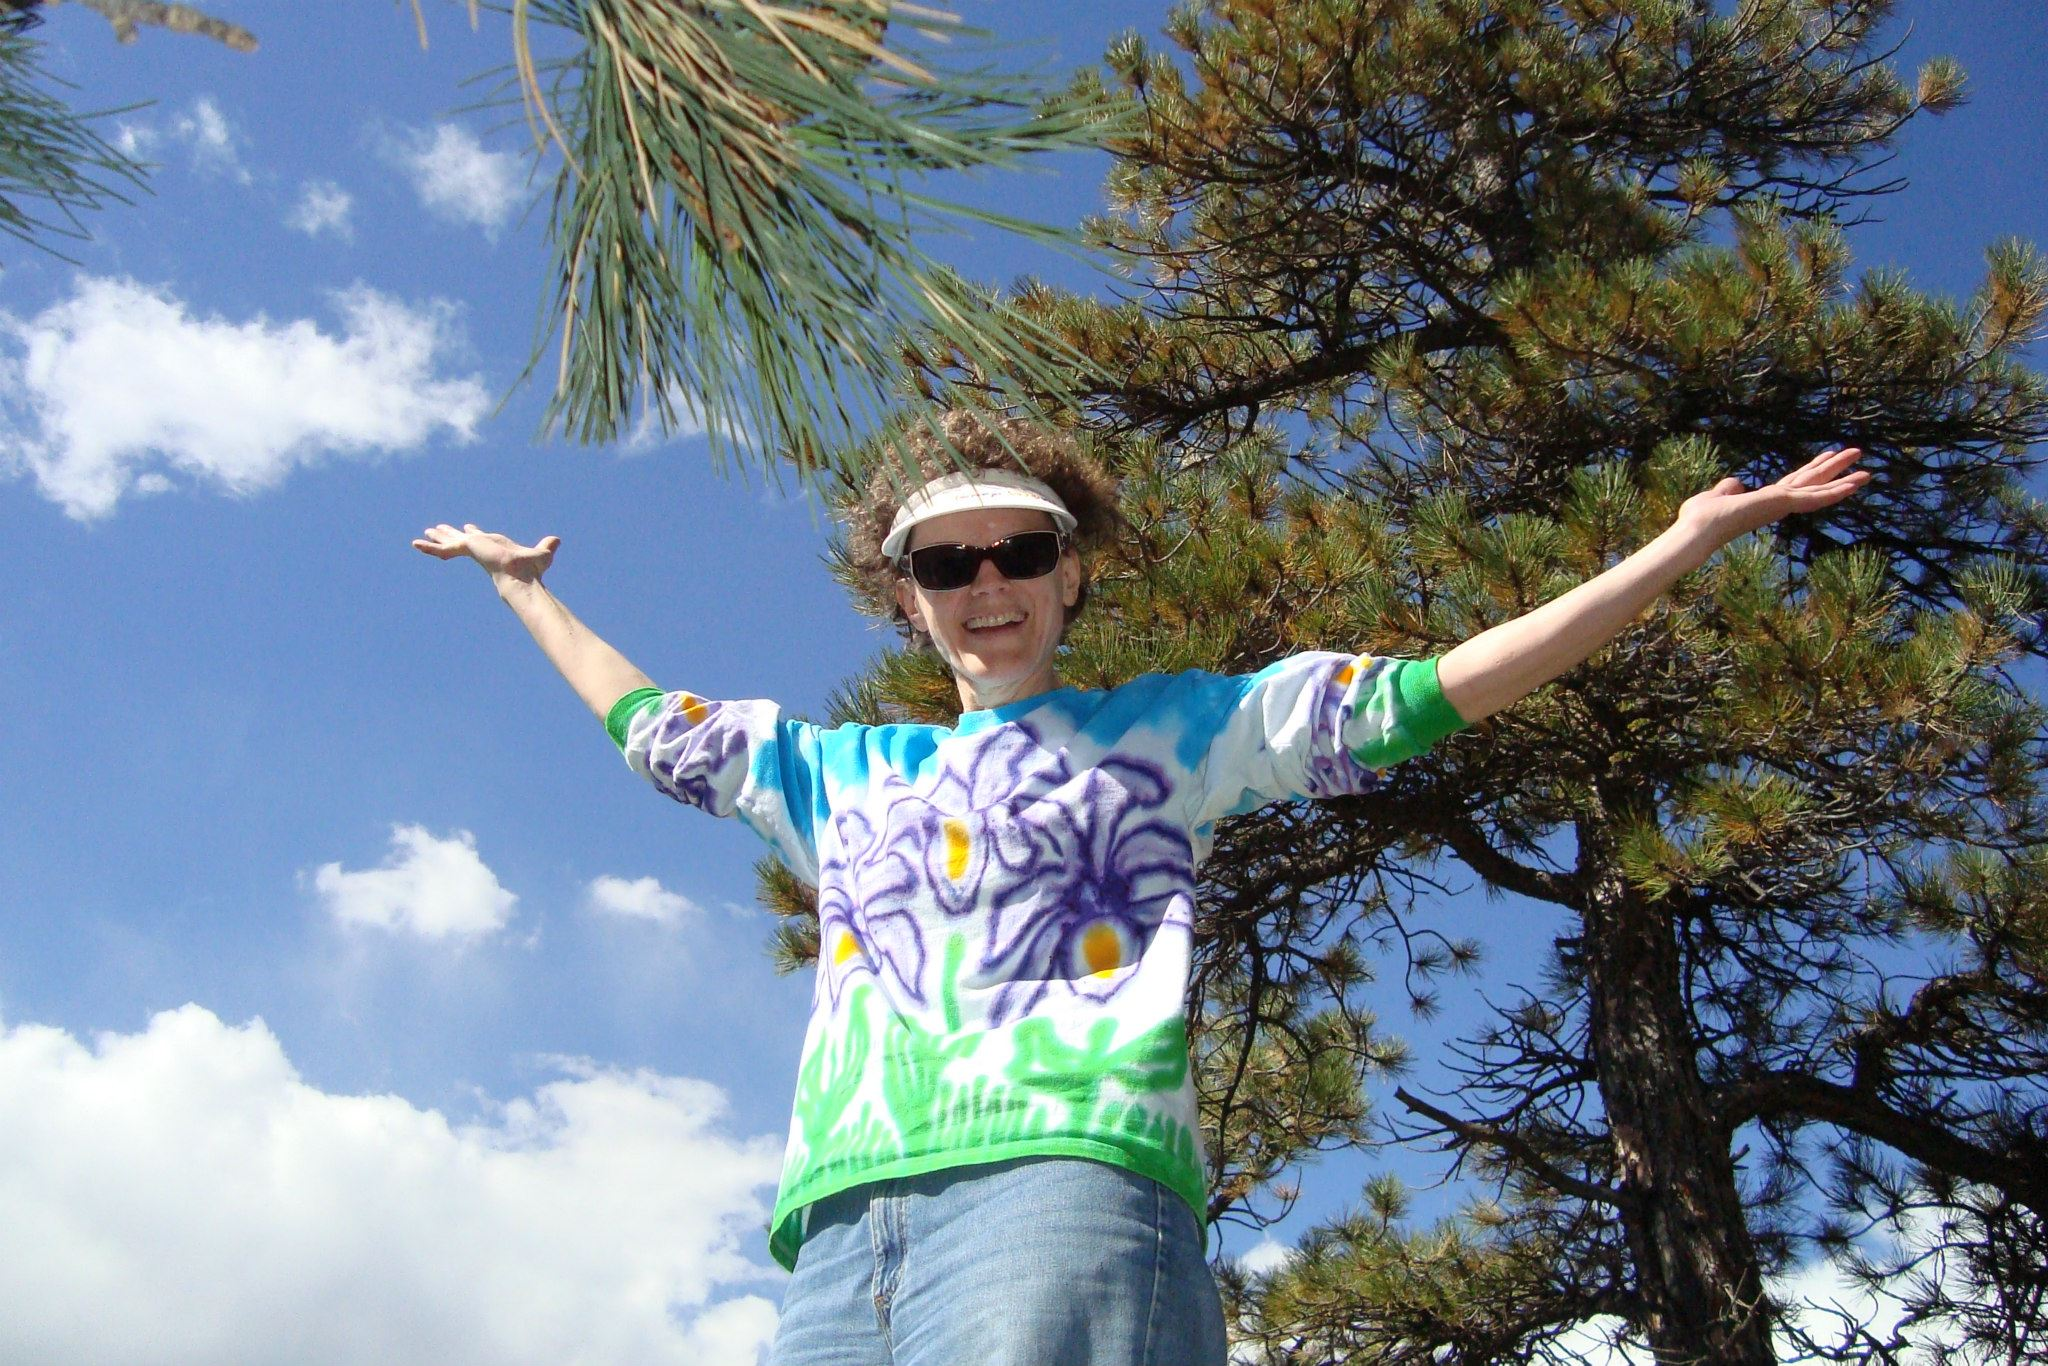 Margaret with arms raised in front of a tree with a blue sky